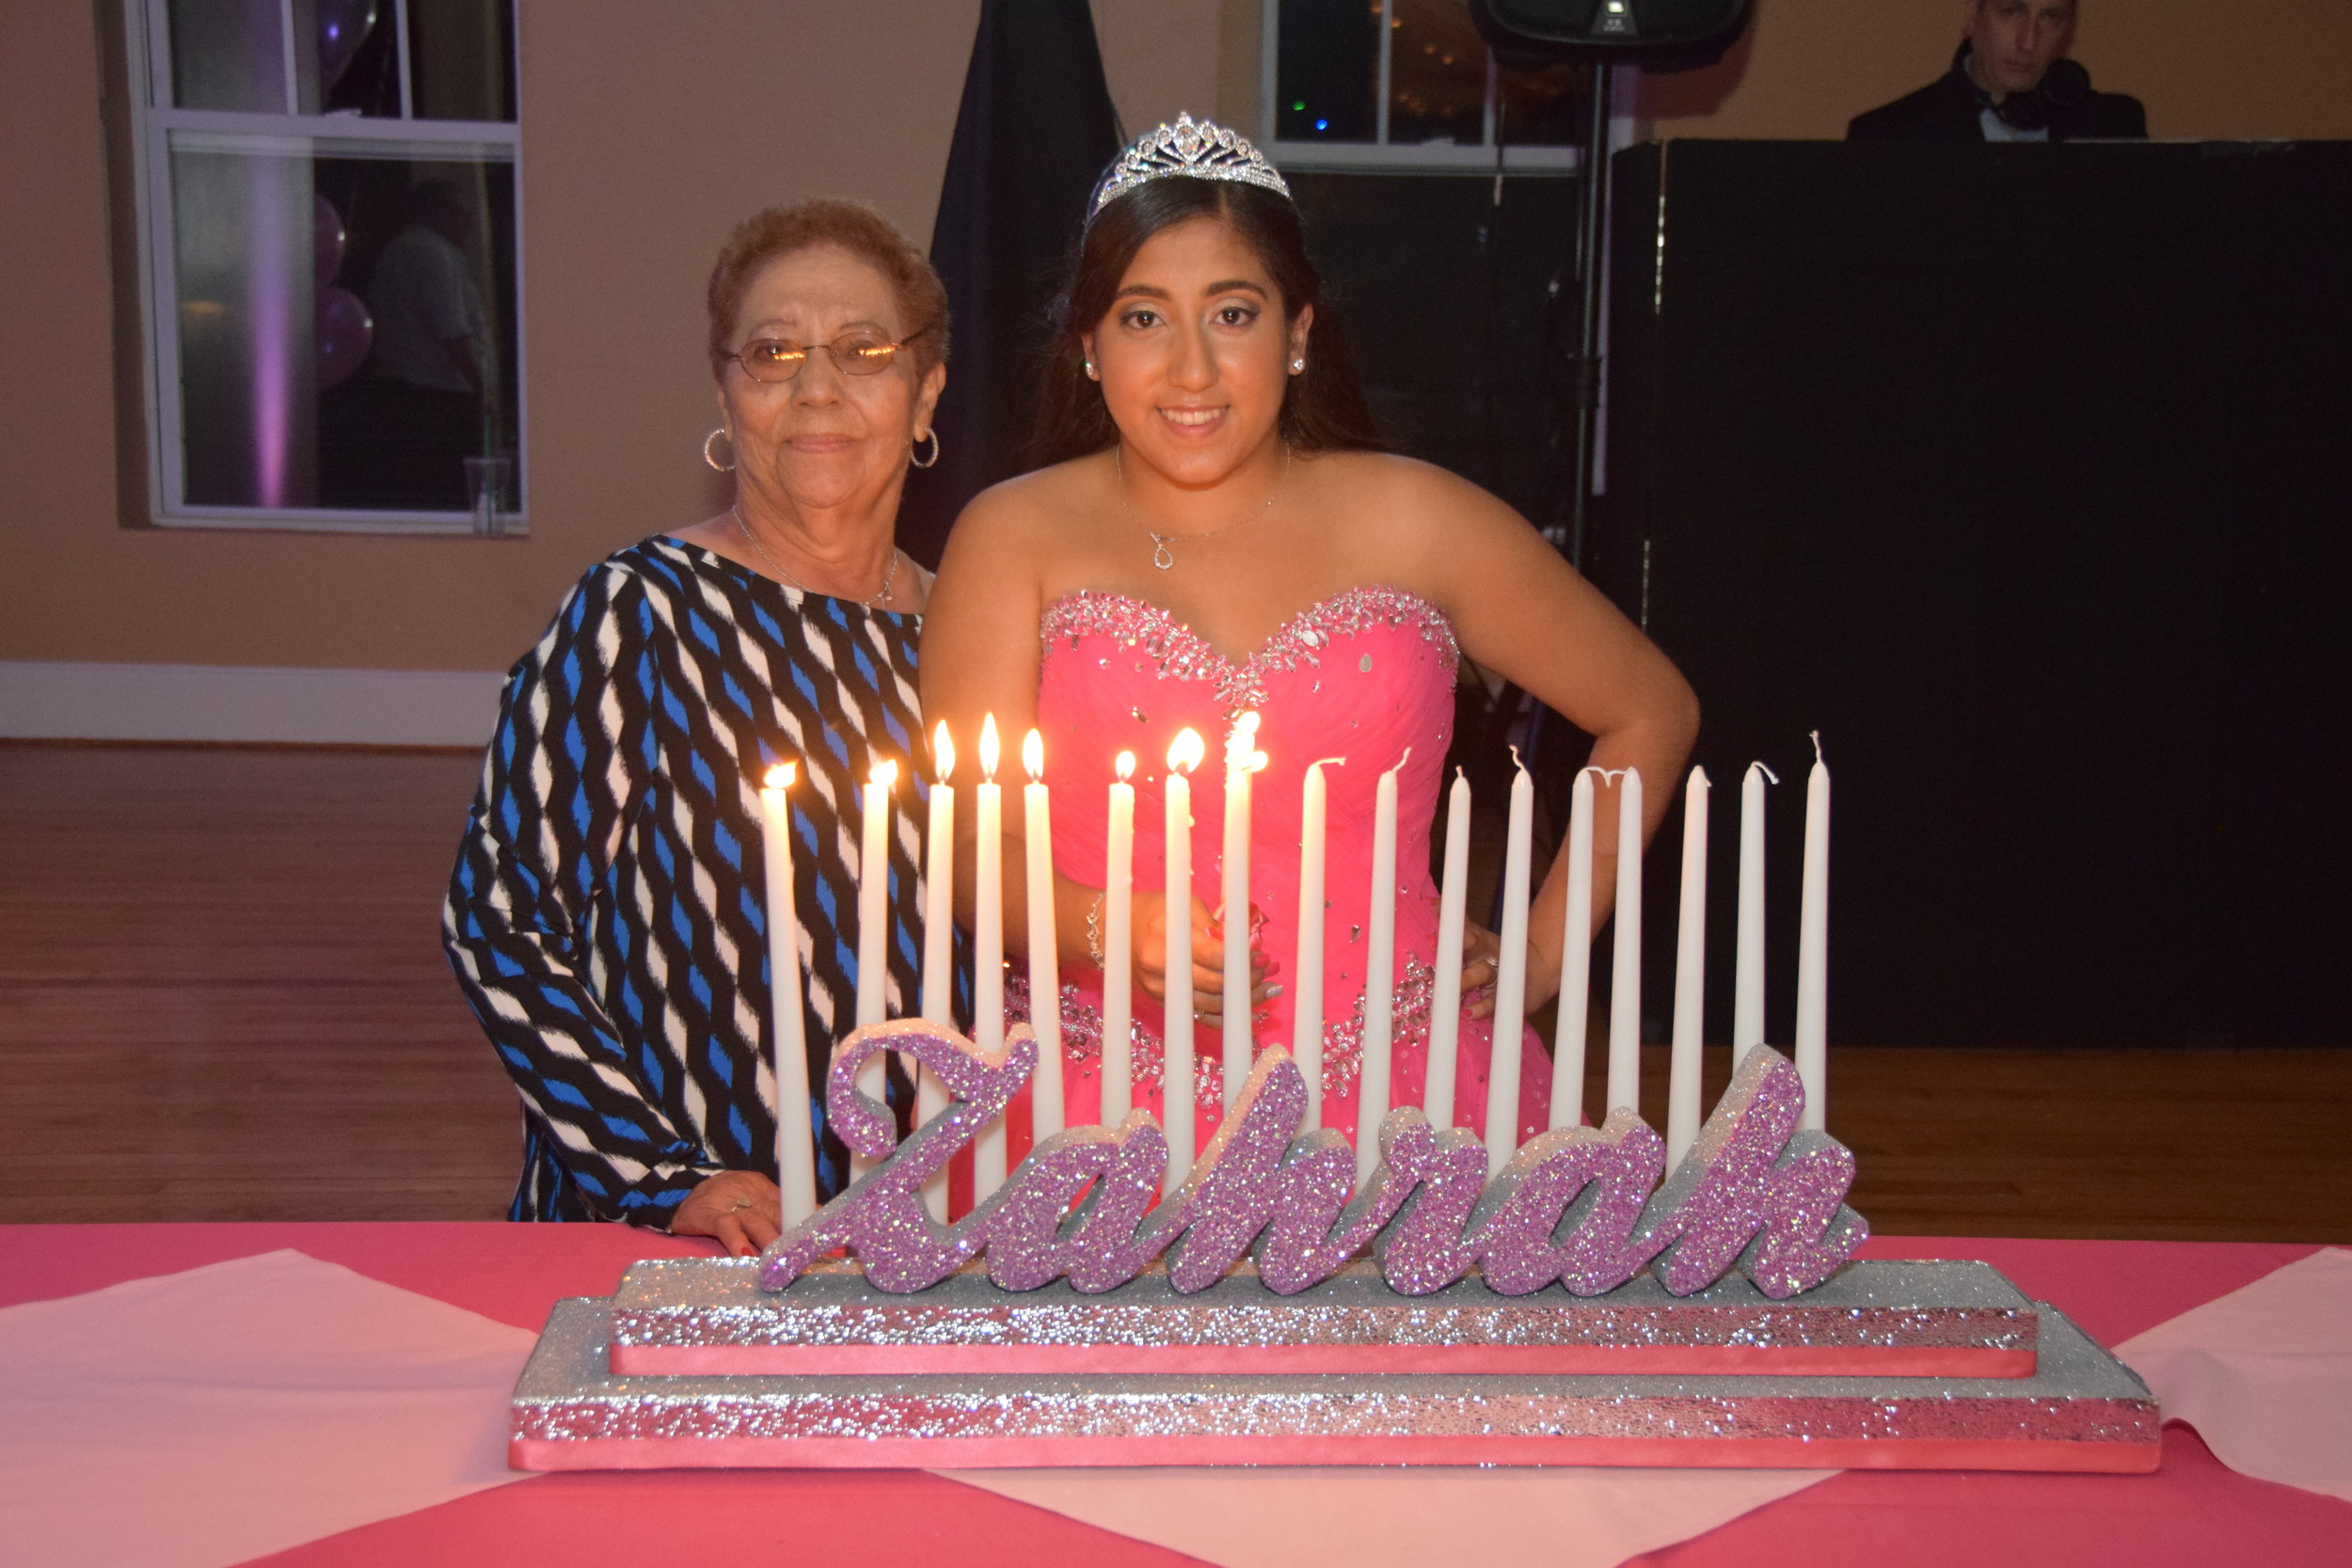 Zahrah Ibrahim said that she has shared many important moments with her grandmother, Graciela. Here, she is helping Zahrah light a sweet sixteen candle in her dedication.